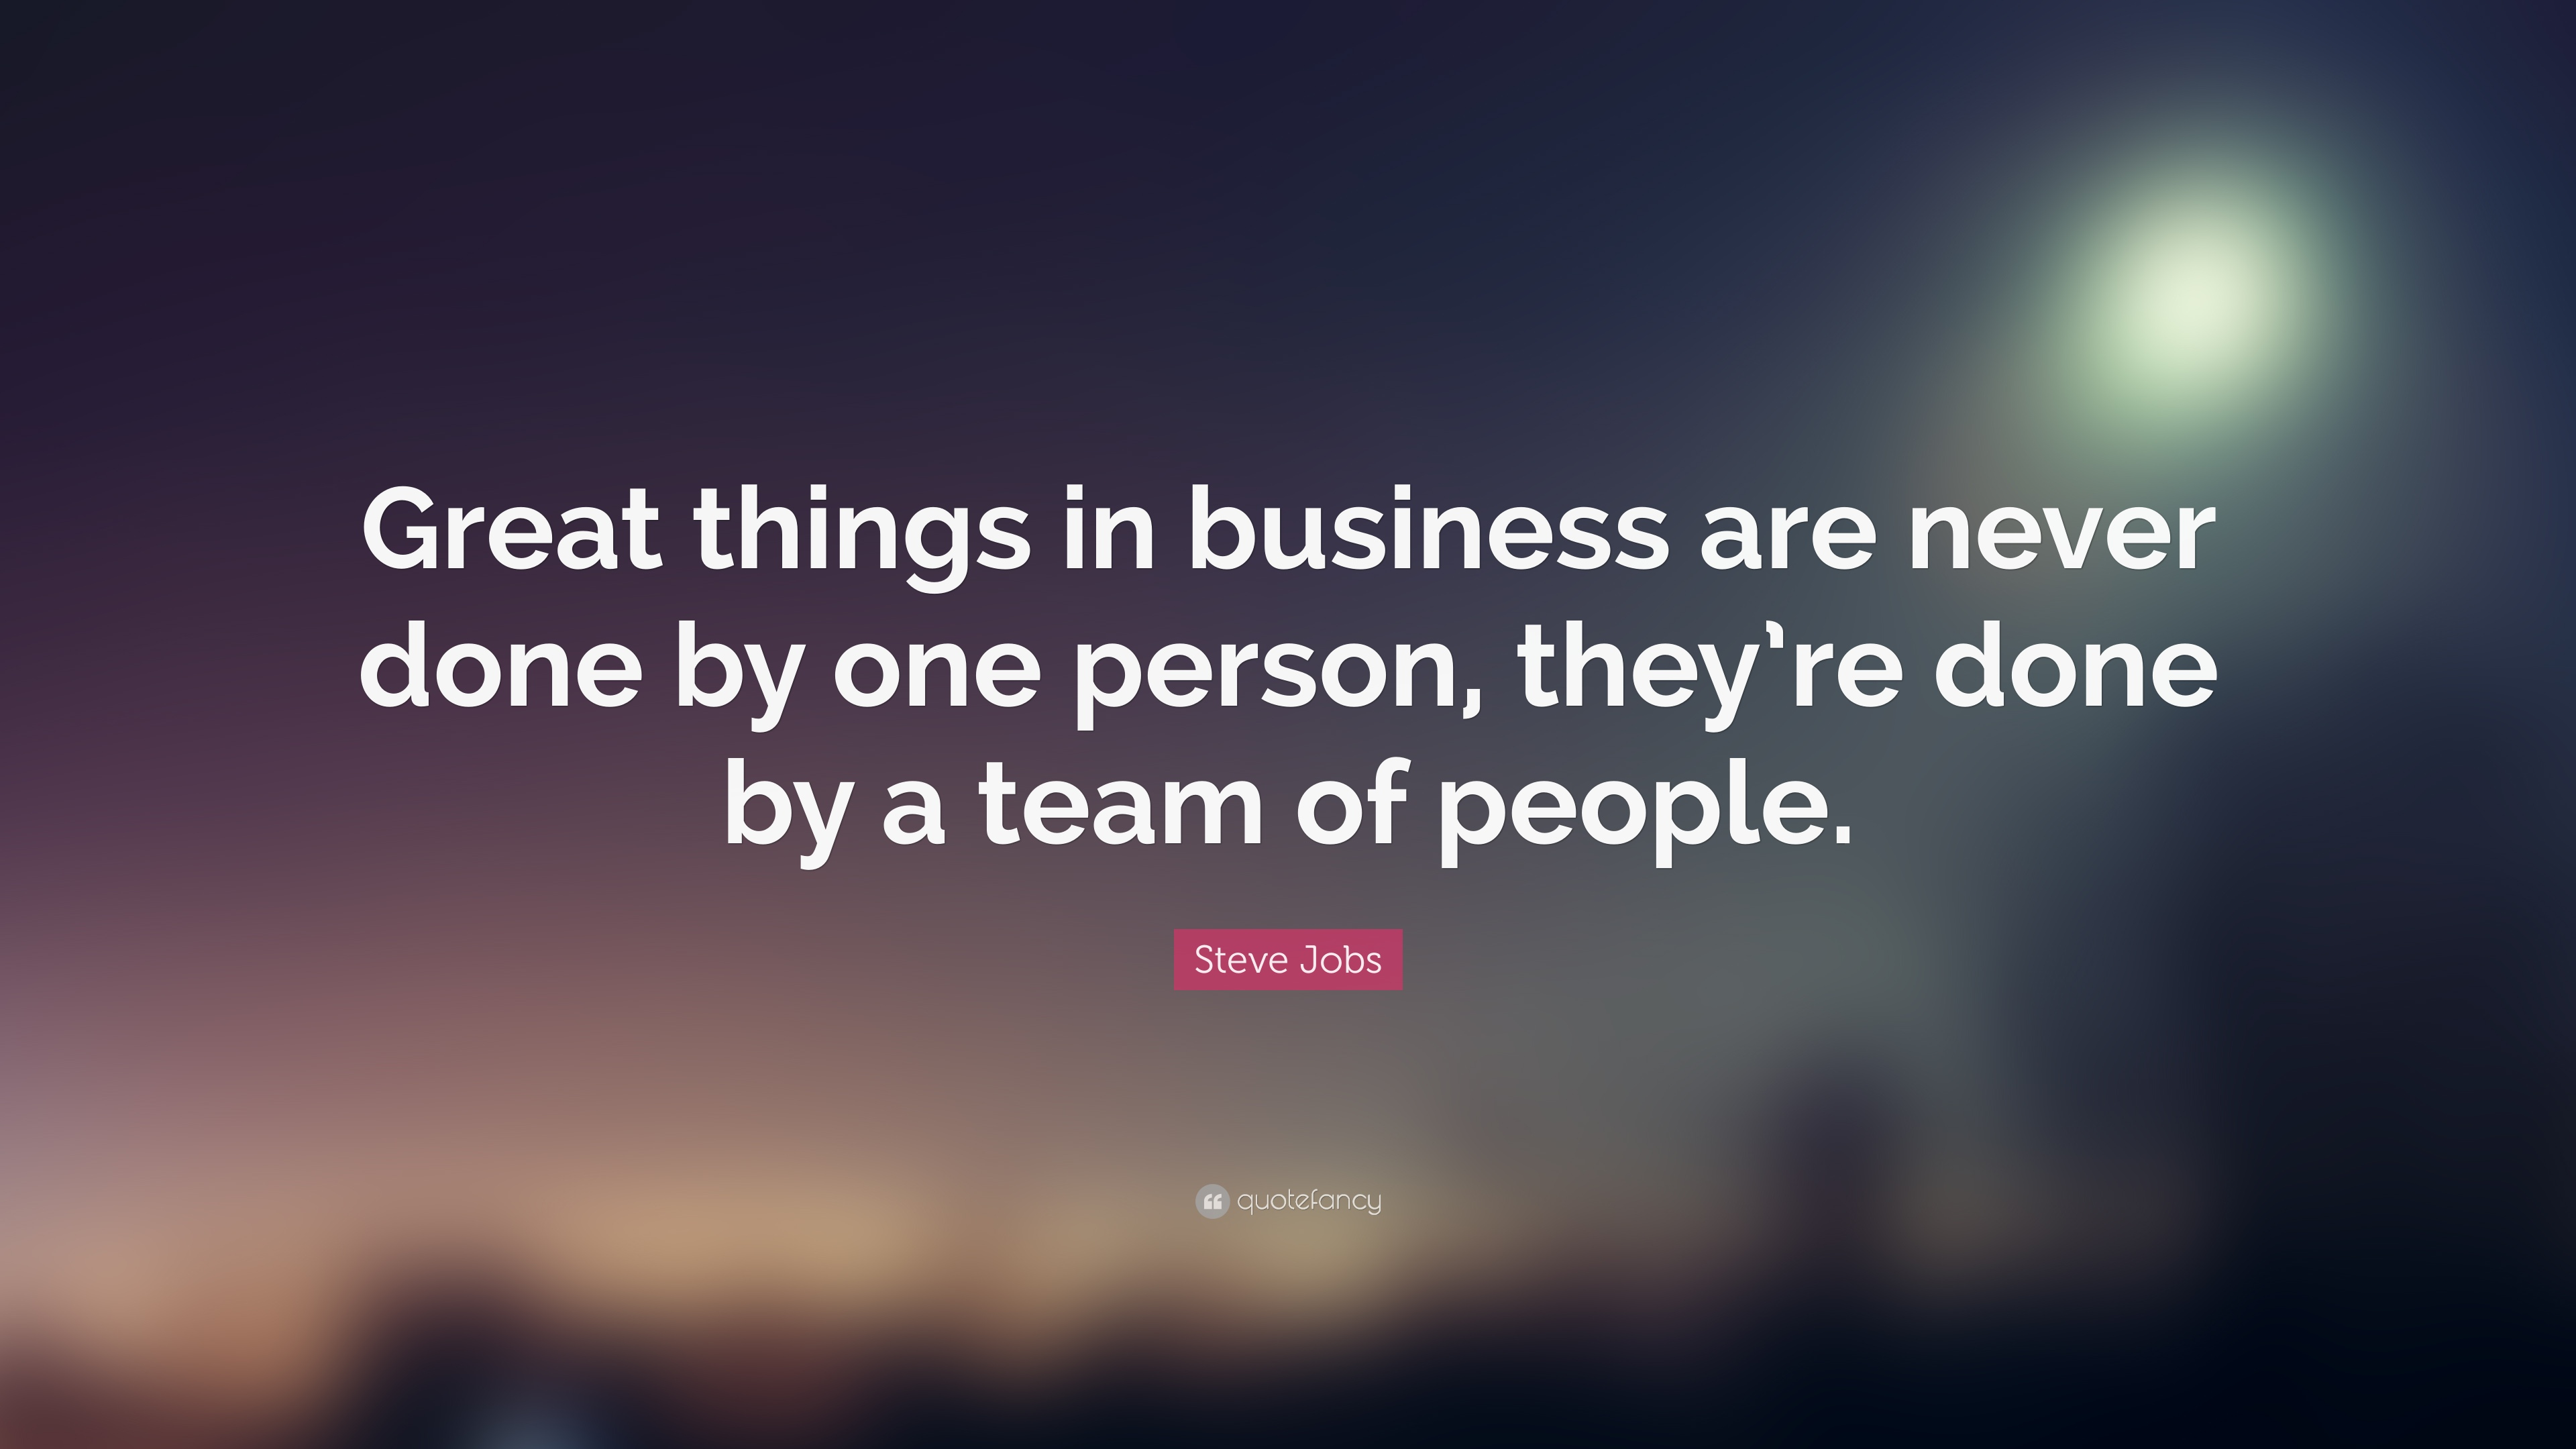 Steve Jobs Quote Great Things In Business Are Never Done By One Person They Re Done By A Team